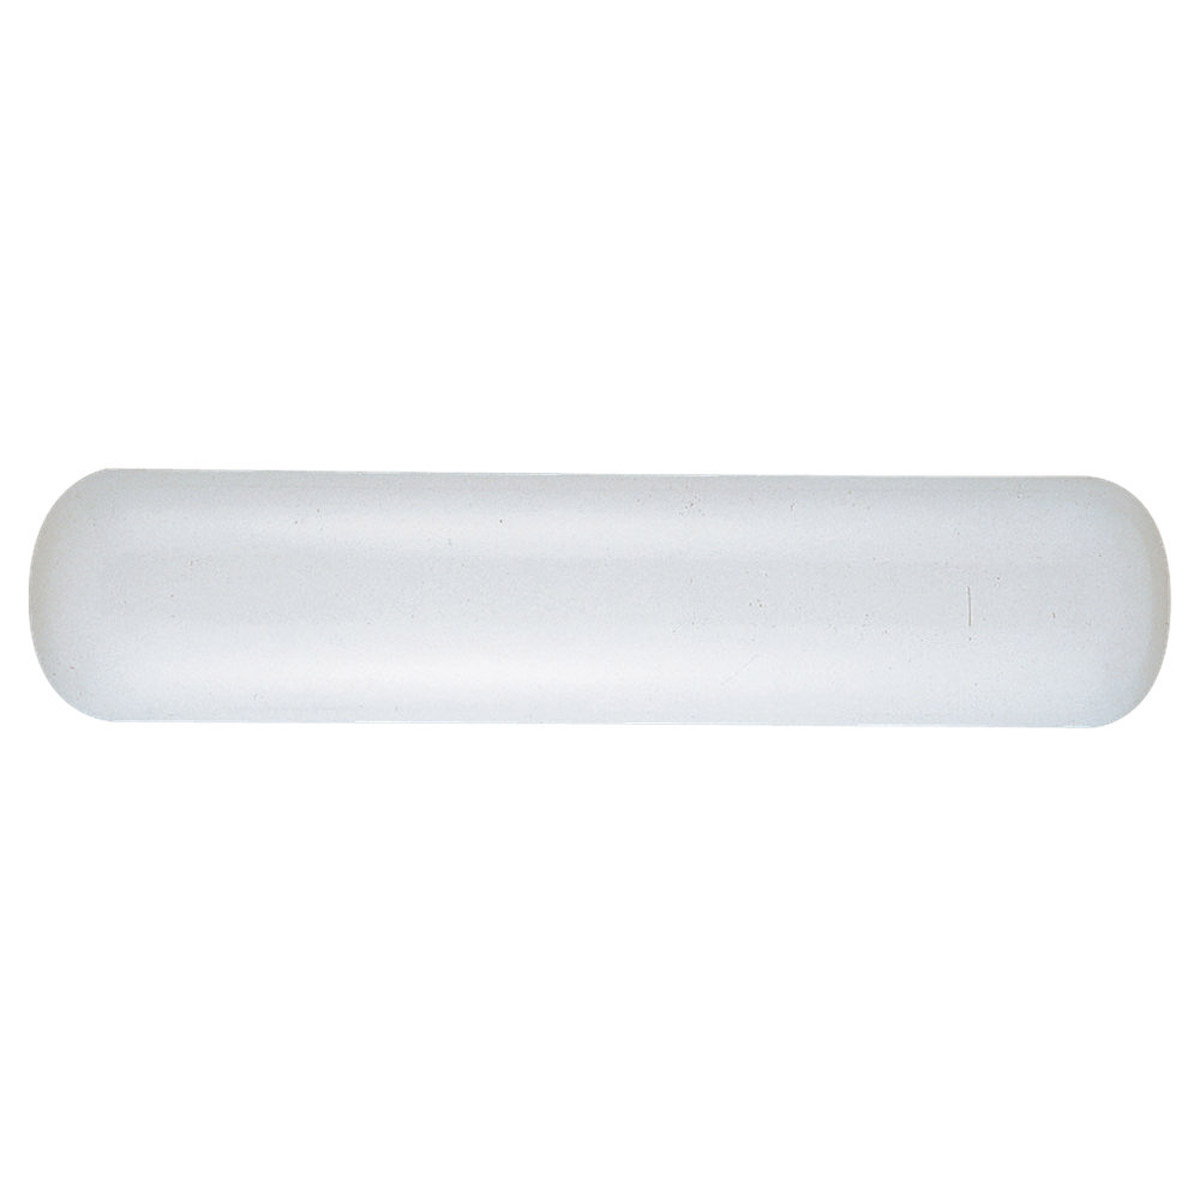 Sea Gull Lighting Pillow Lens Fluorescent 3 Light Bath Vanity in White Plastic 4940BLE-68